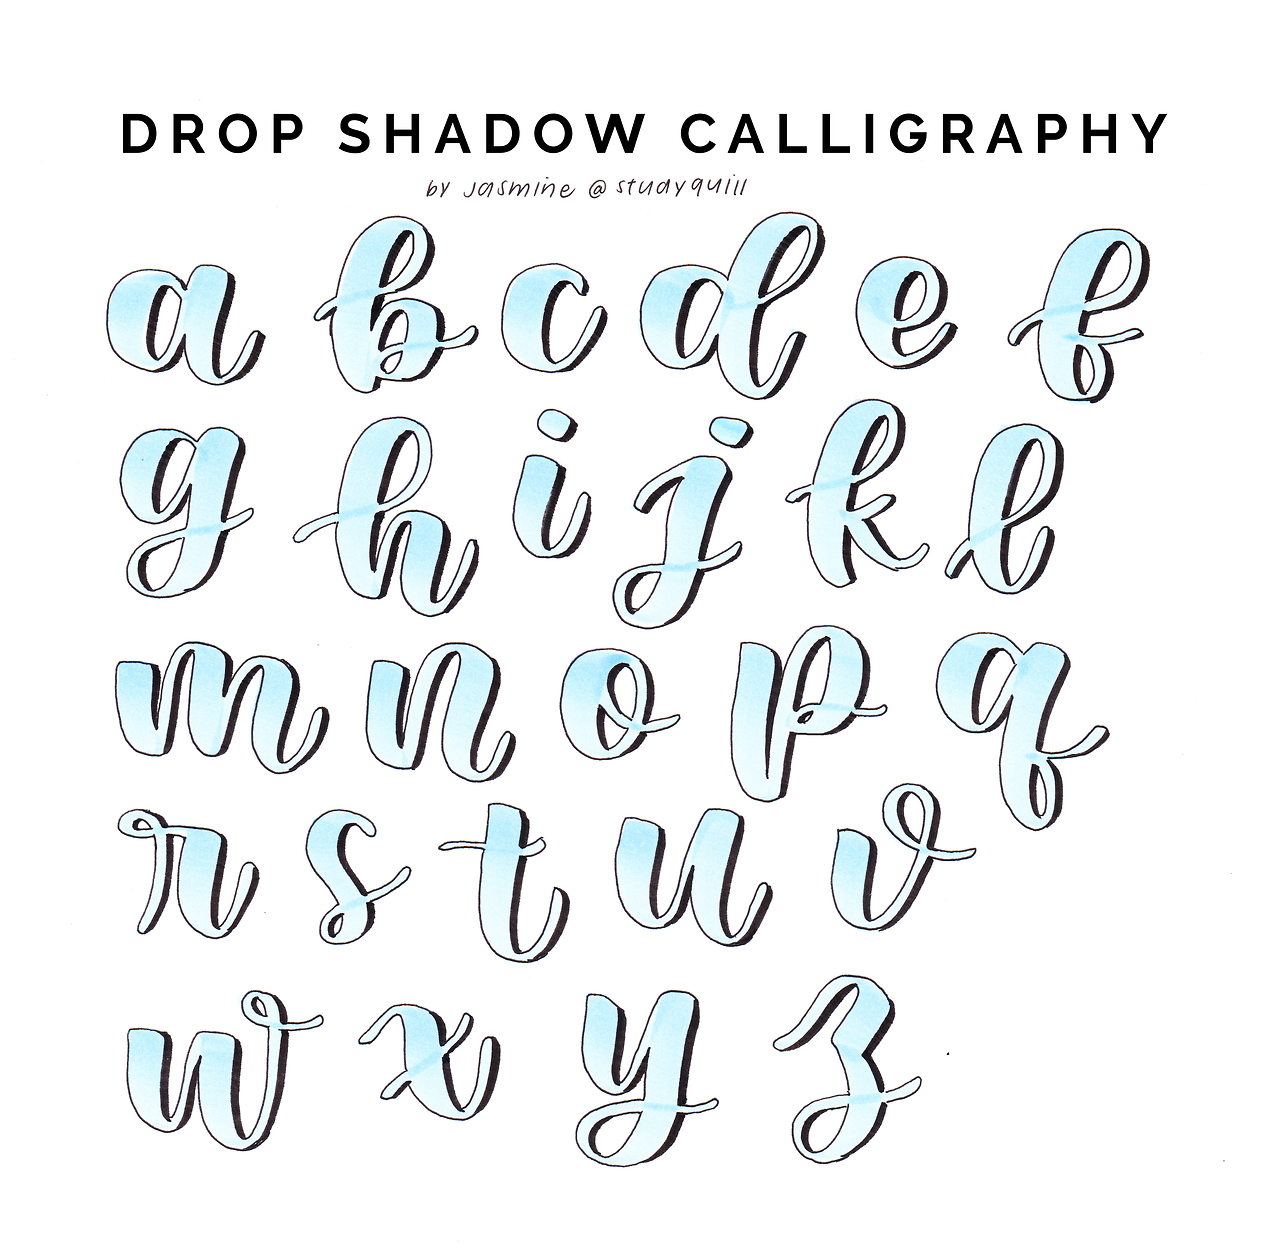 Calligraphy Drop Shadow Reference Sheet See The Process